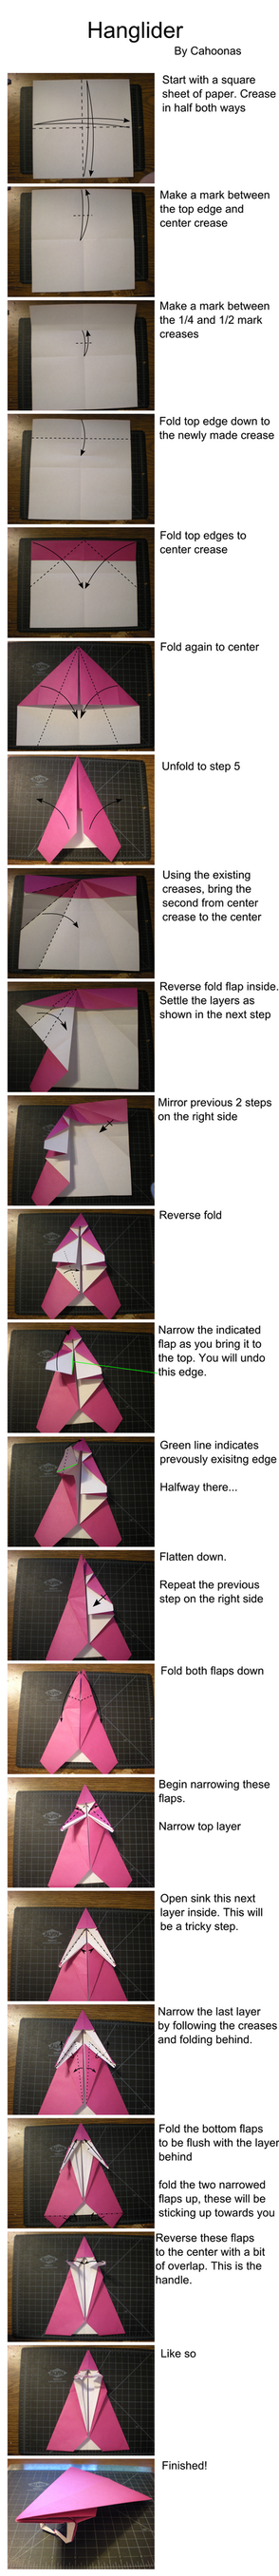 how to make an origami circular glider step by step